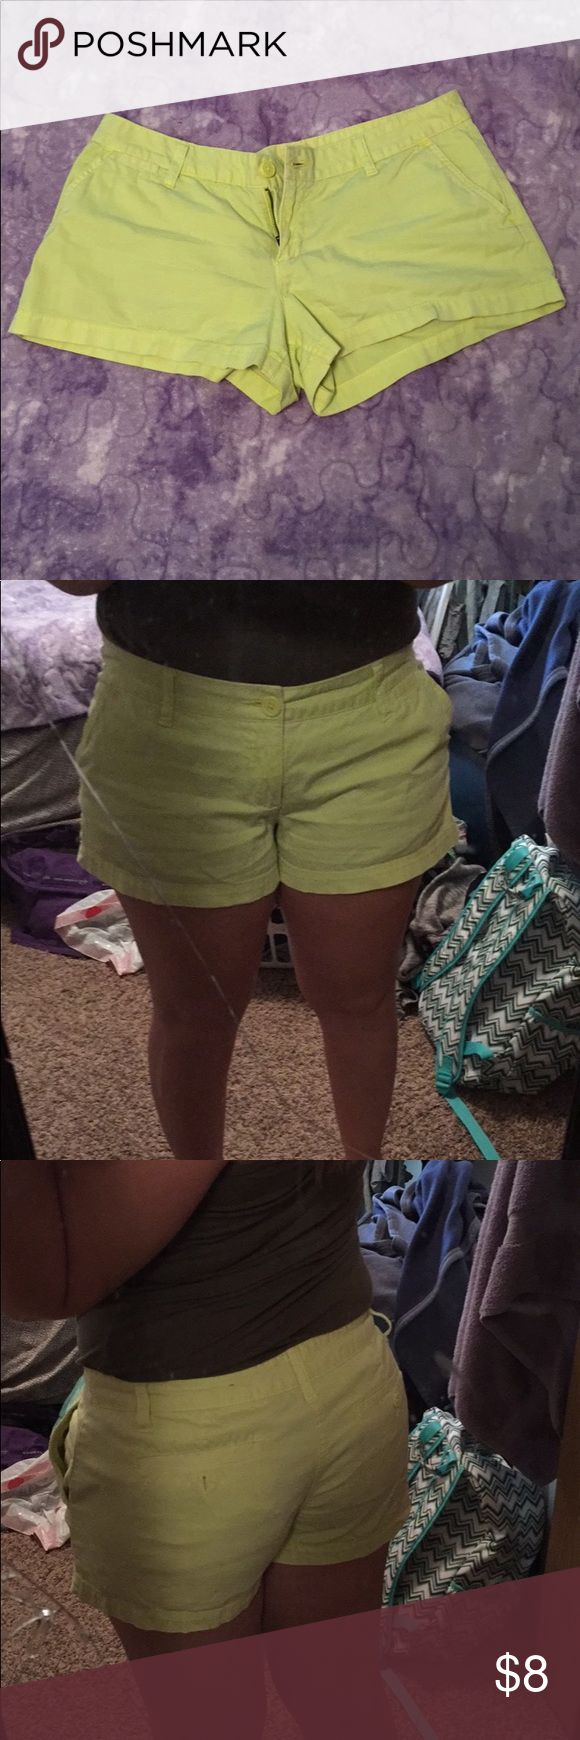 Neon Yellow Shorts These shorts are a light neon yellow. Size 11 in juniors, medium fit. Zipper and buttons are all good. There is not much stretch and the style resembles a pair of khakis. Shorts